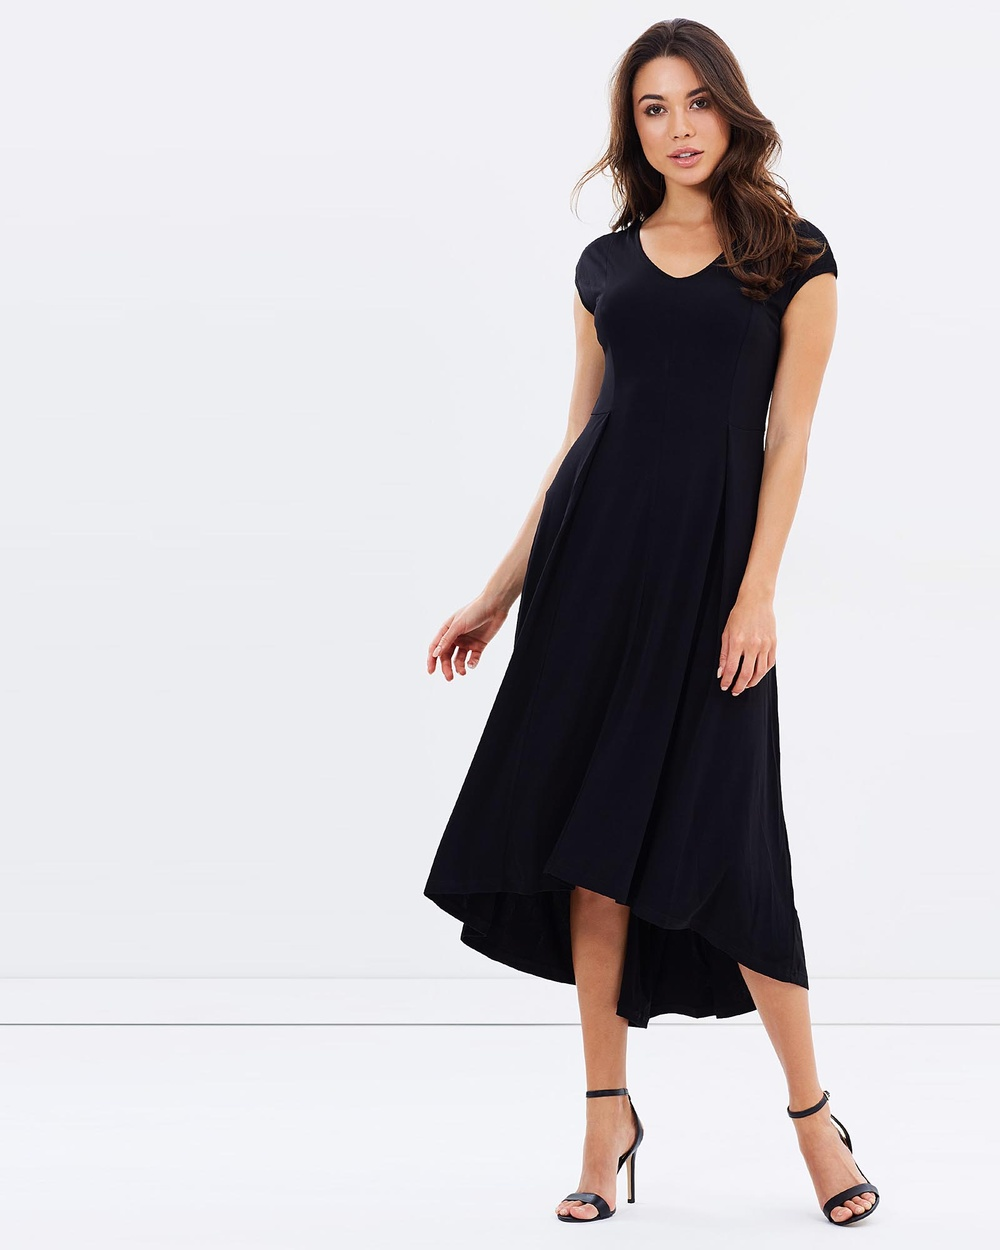 Faye Black Label Elegance V Neck Flare Dress Dresses Black Elegance V-Neck Flare Dress